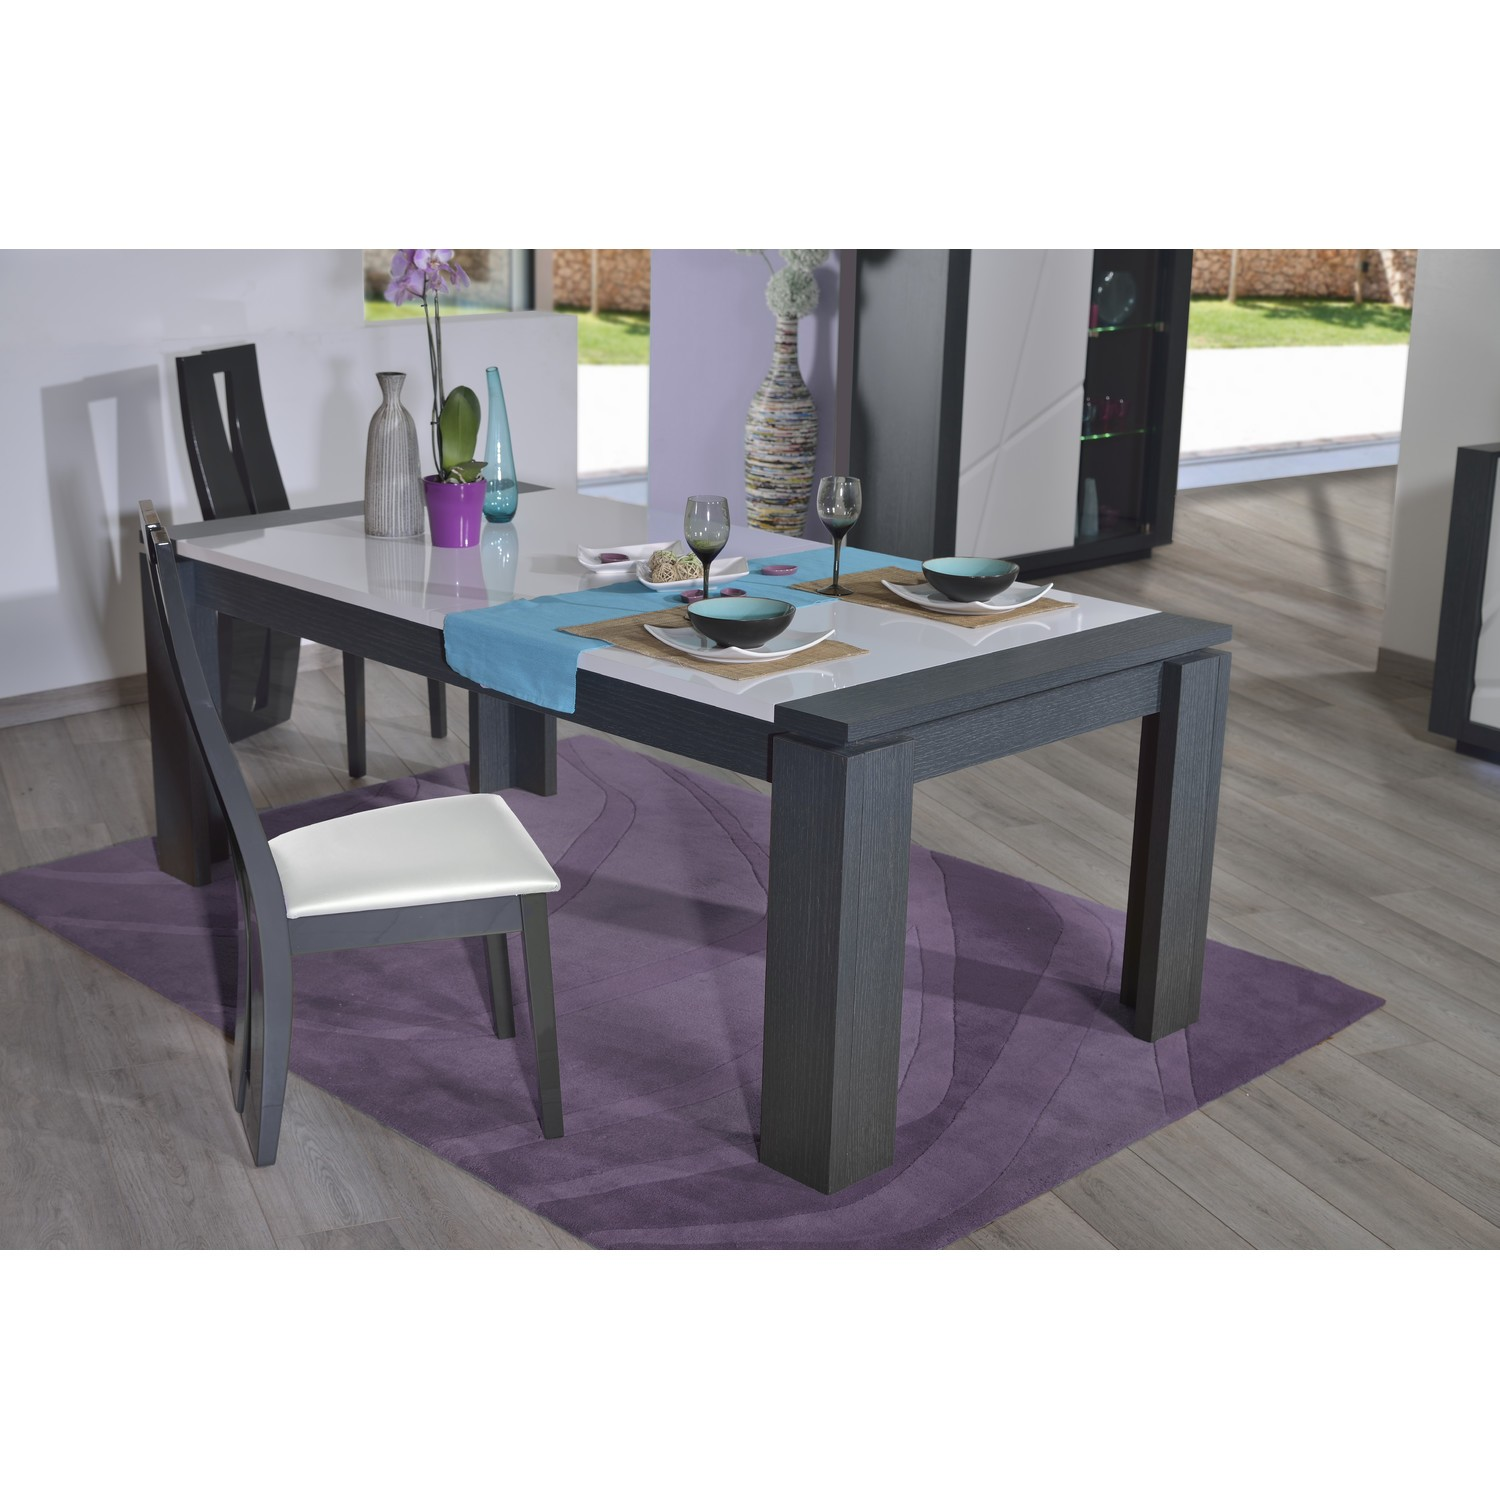 Quartz Extendable Dining Table With Dark Wood Body Dining Tables 1568 Sena Home Furniture